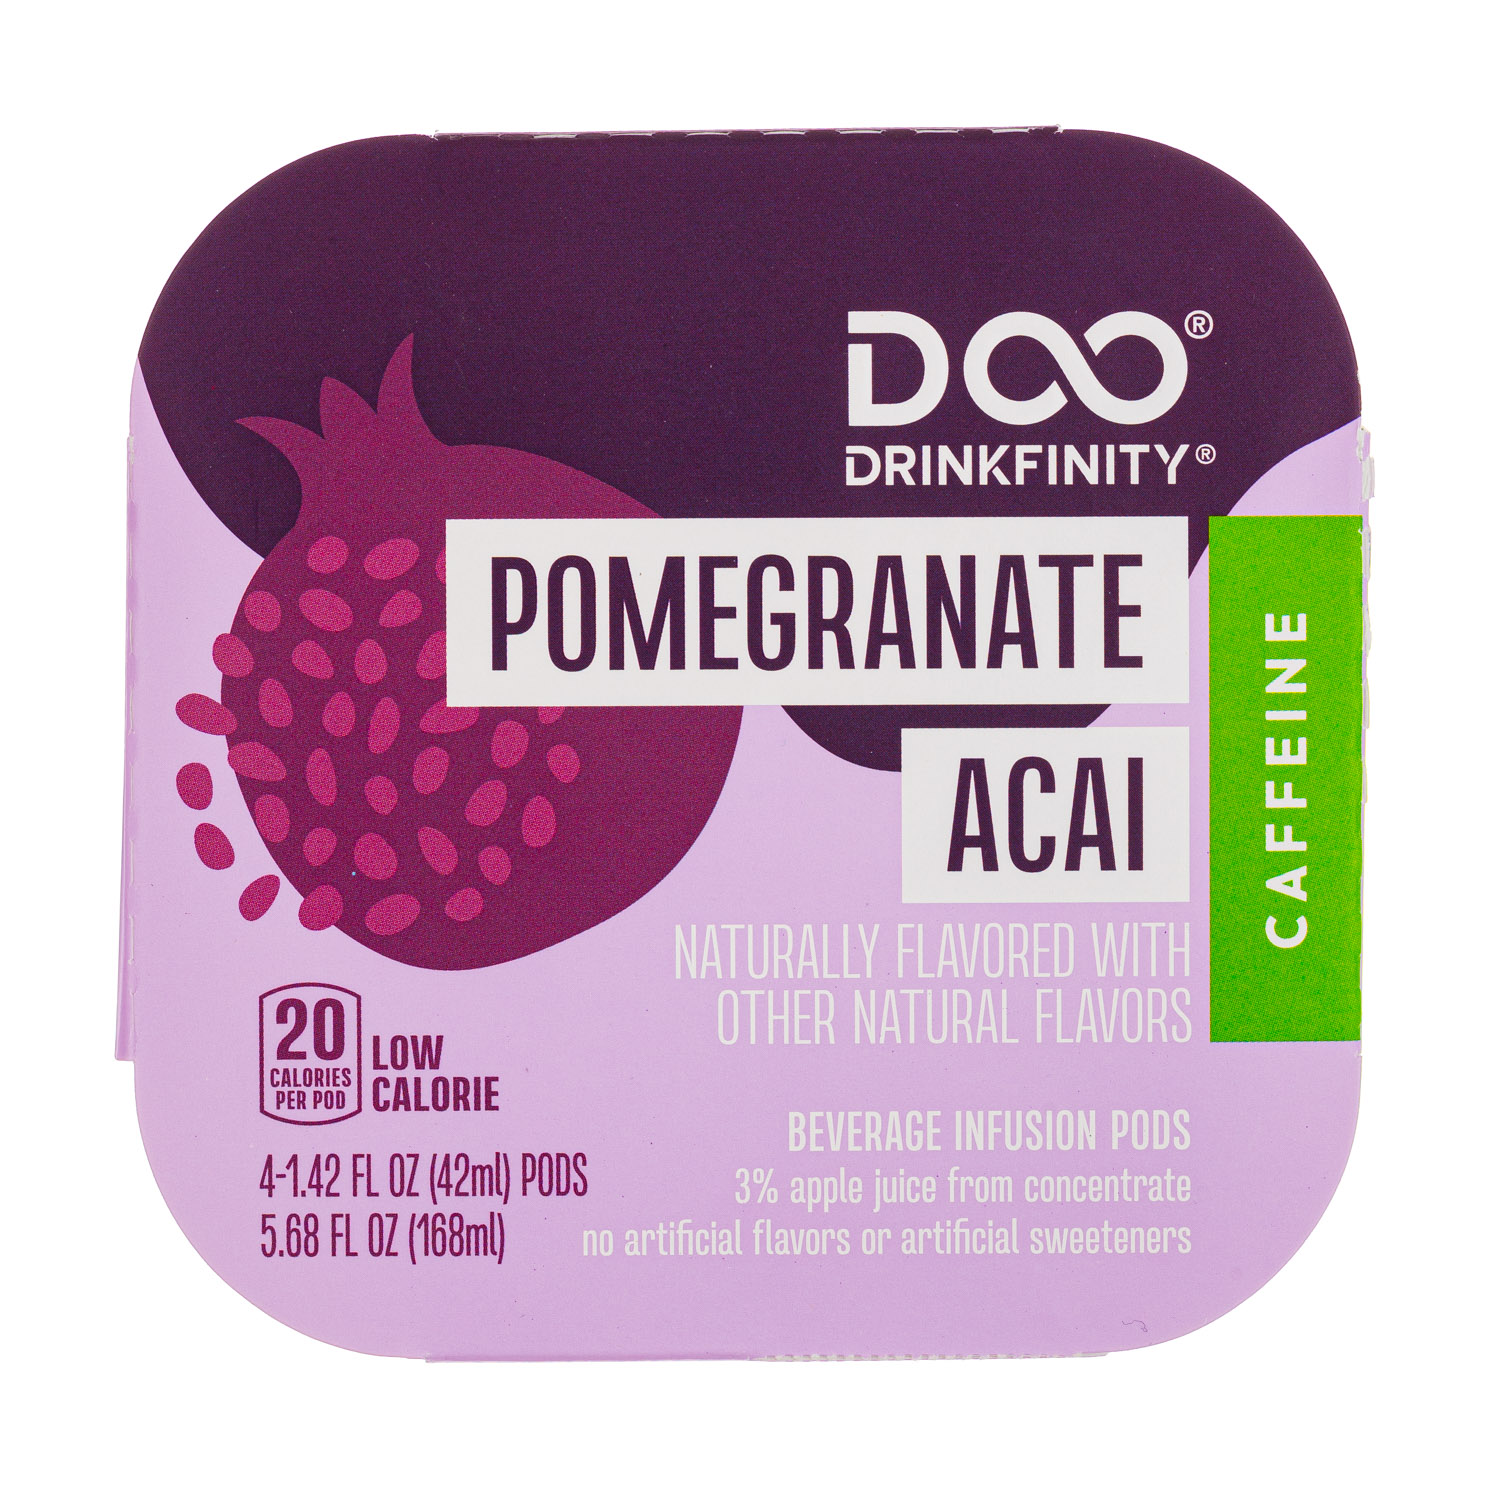 Pomegranate Acai